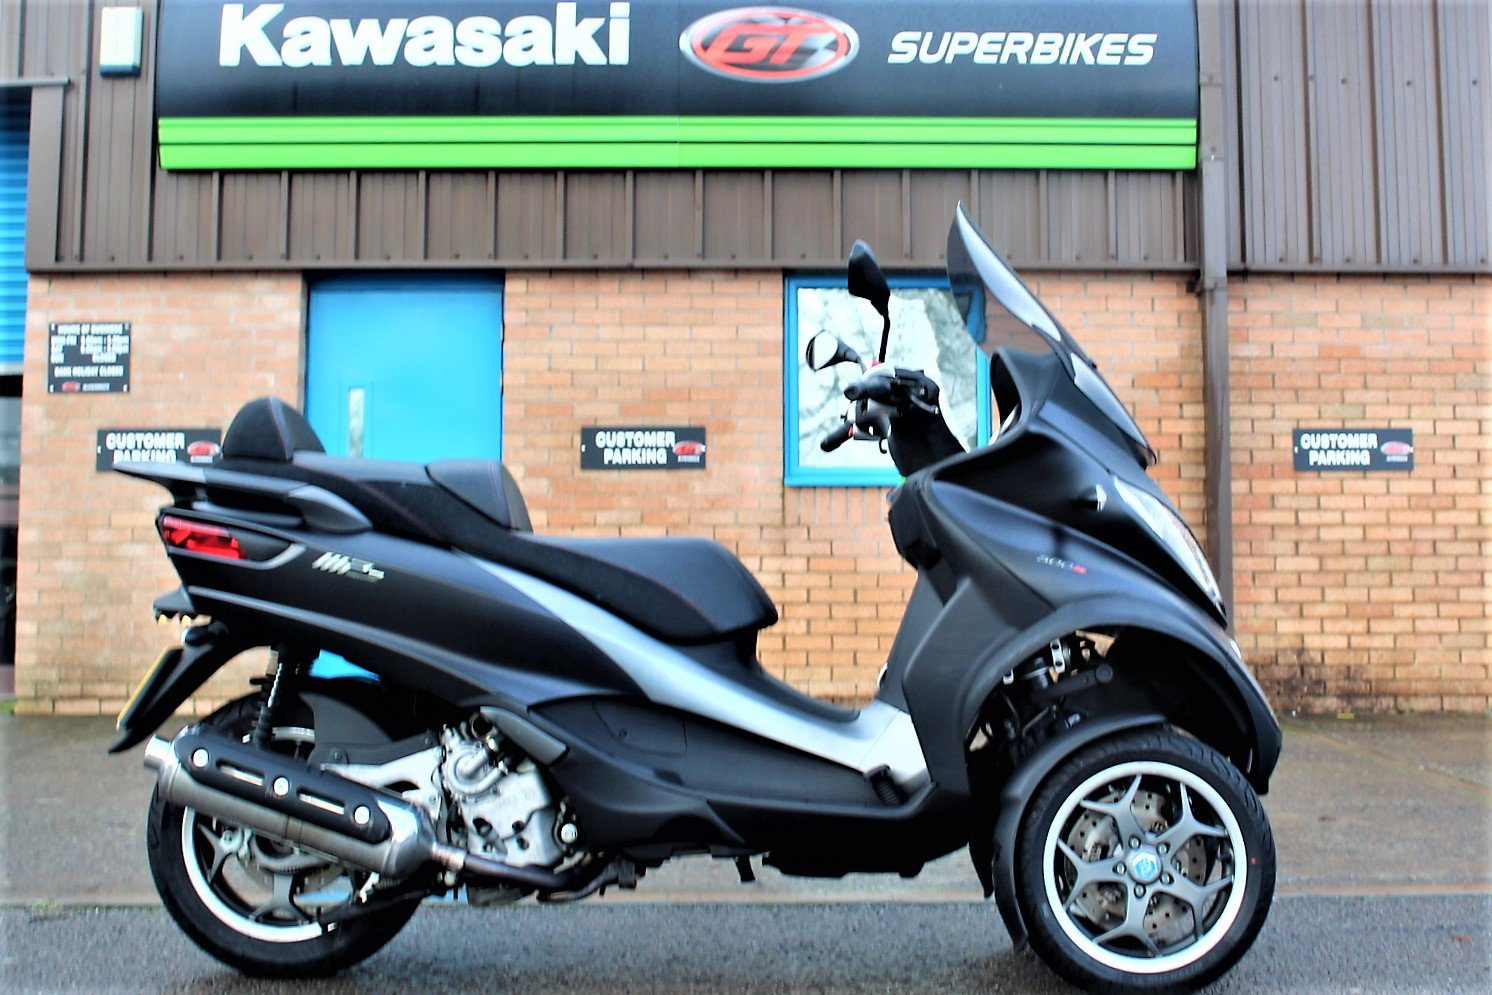 2017 17 Piaggio MP3 500 LT SPORT ABS *RIDE ON A CAR LICENCE* For Sale (picture 1 of 12)